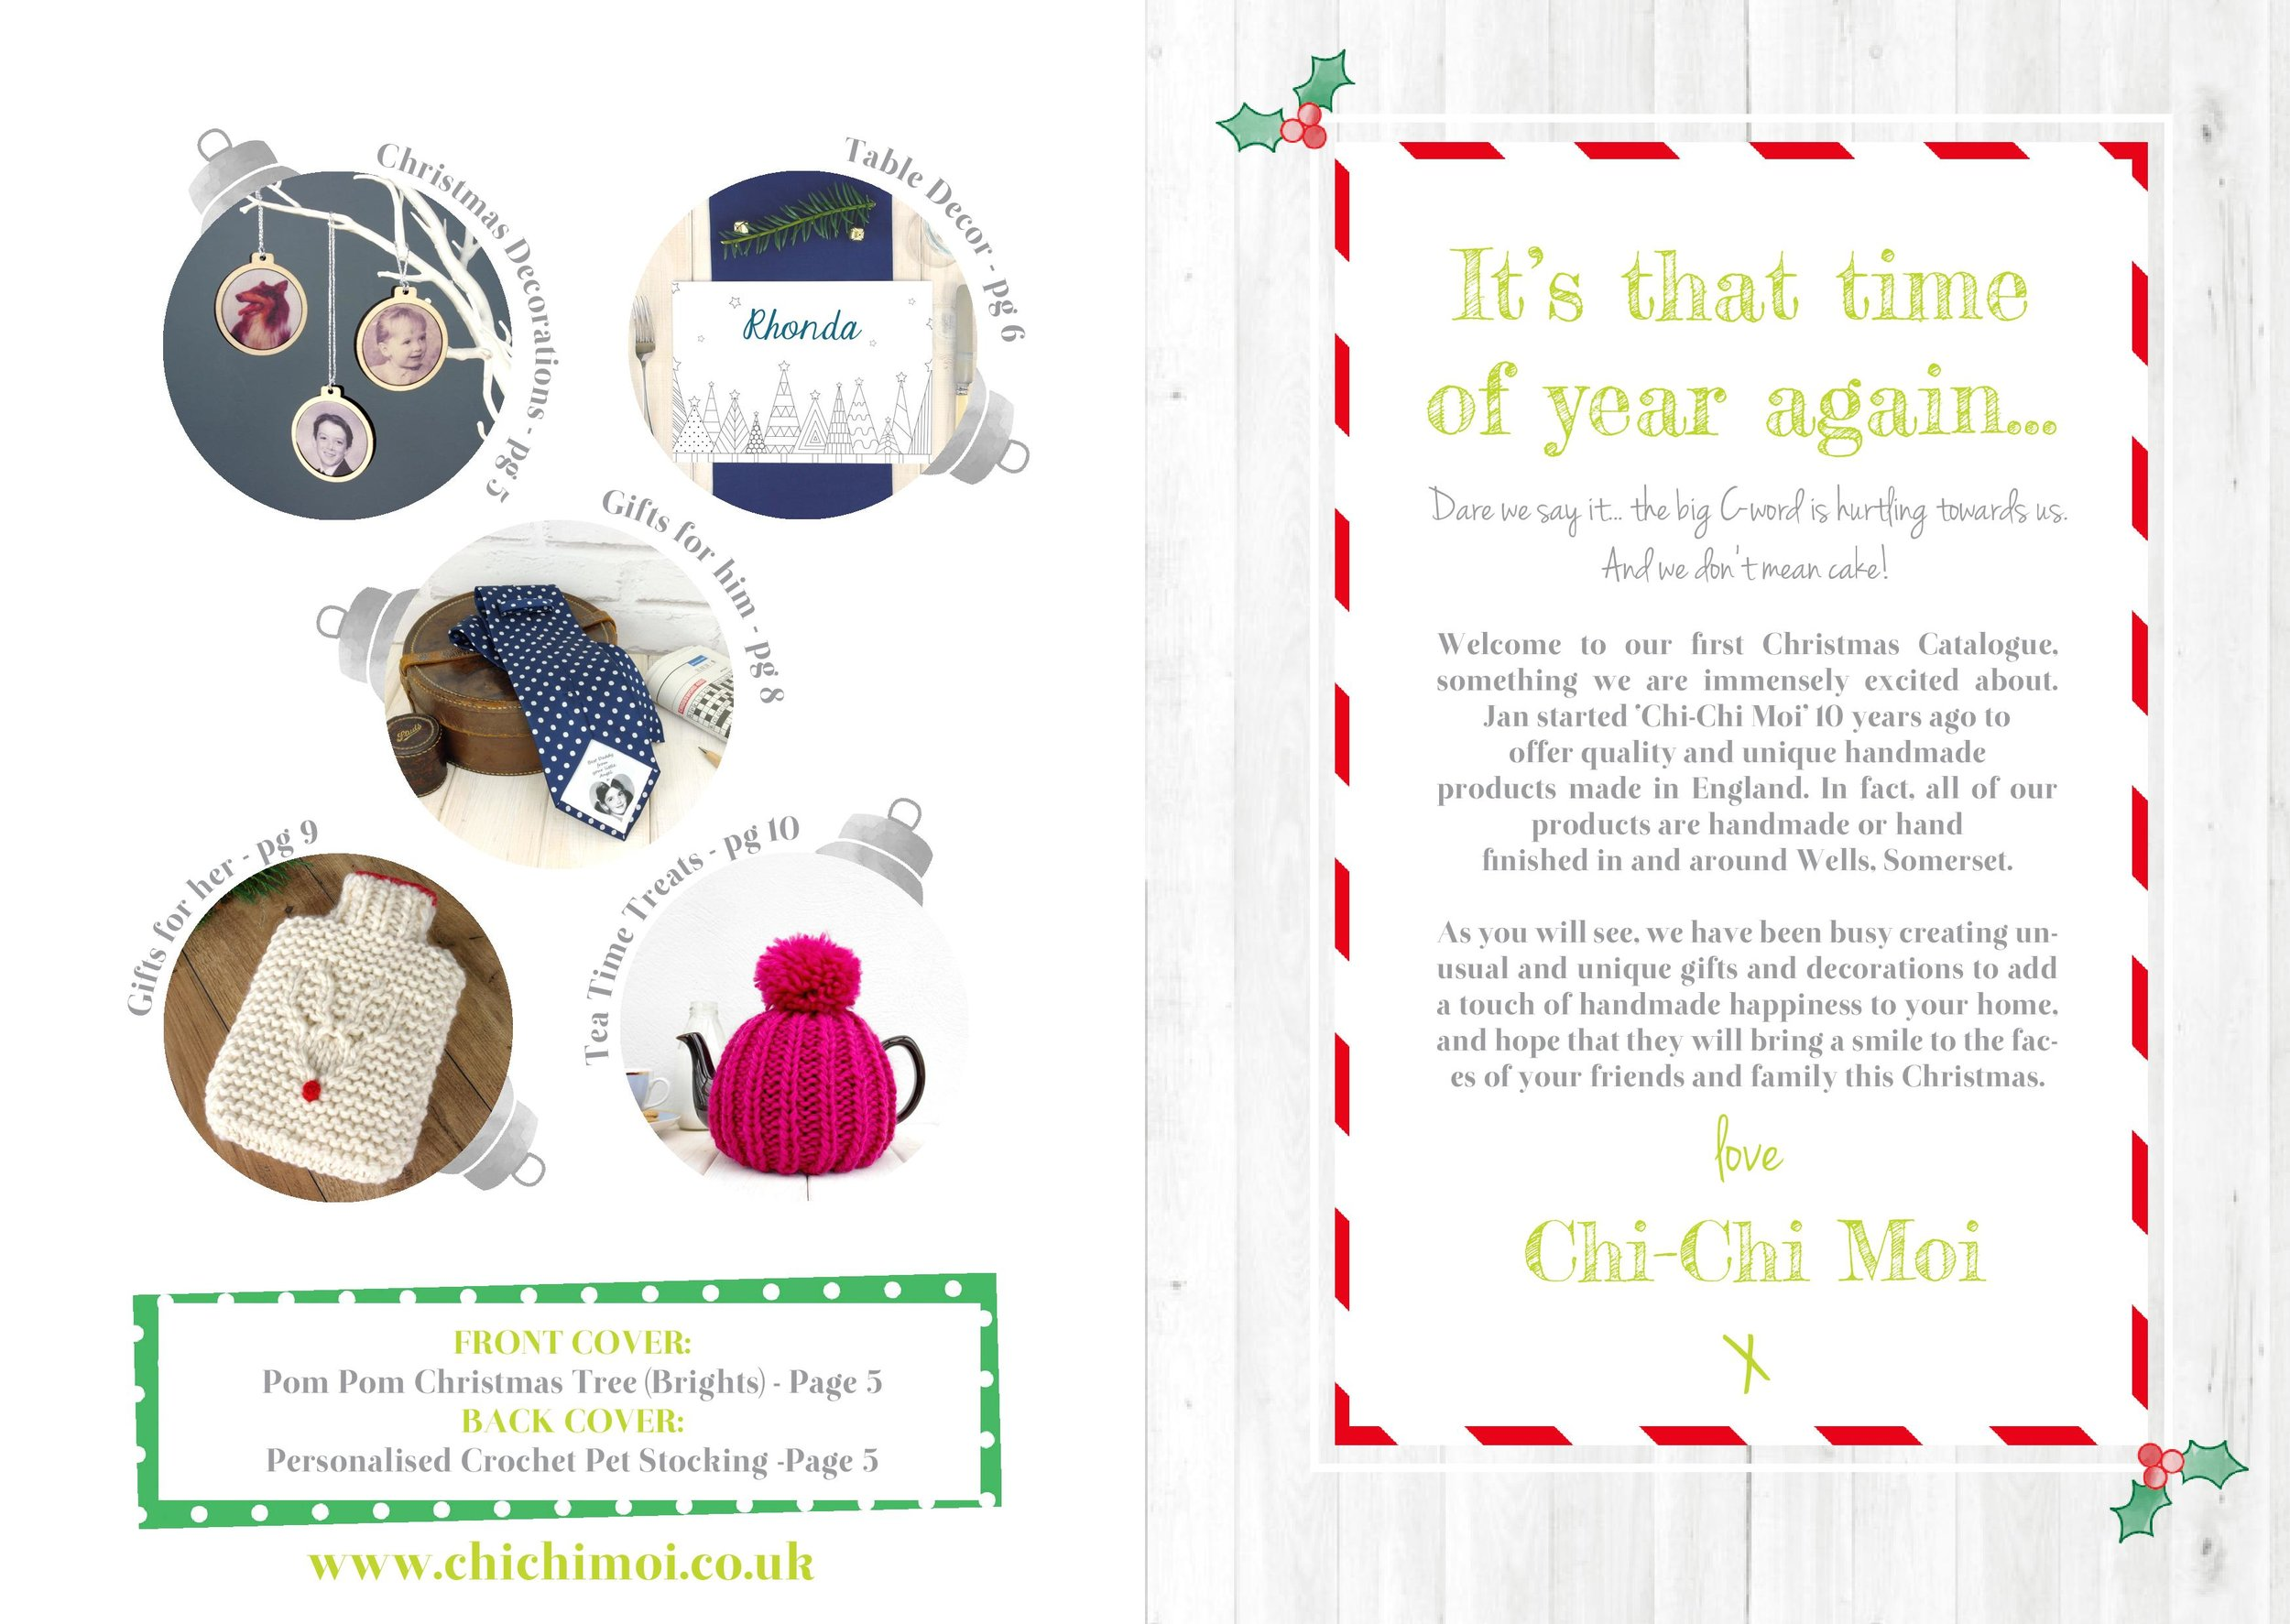 chichimoi-christmas-catalogue-online-page-002